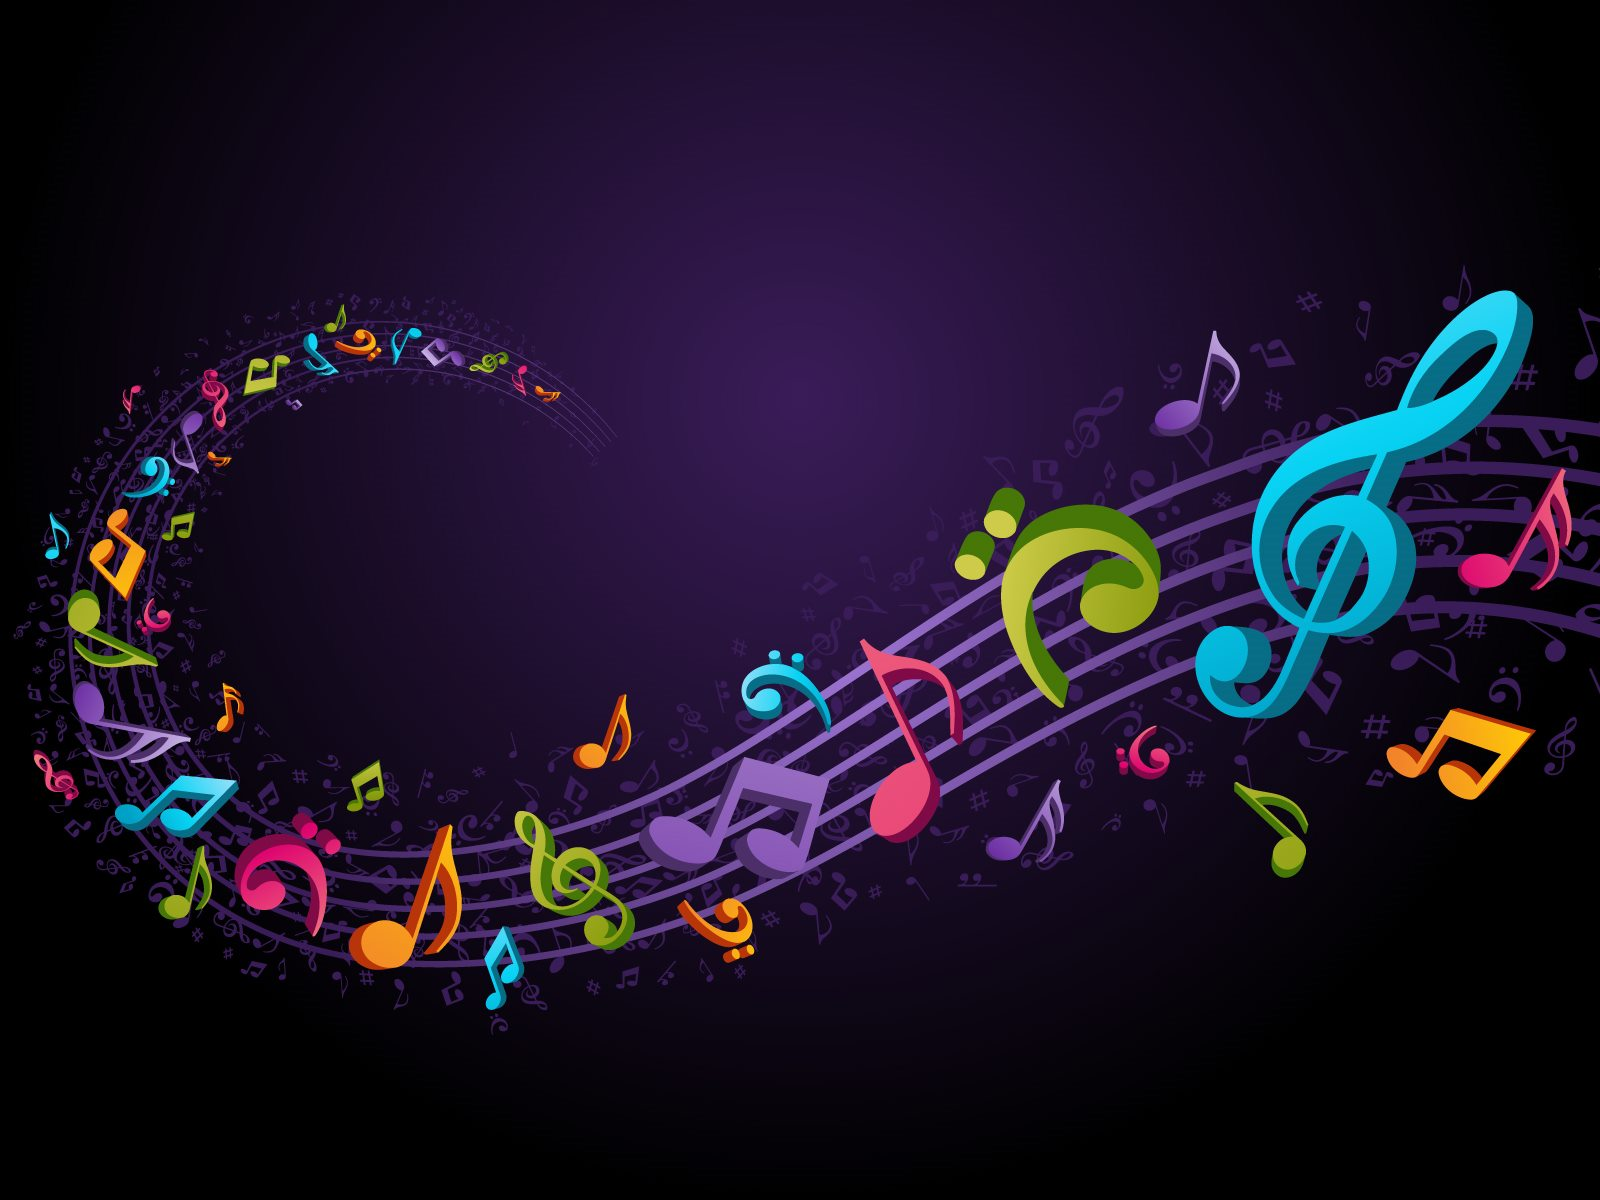 Awesome Music Wallpaper Backgrounds images 1600x1200